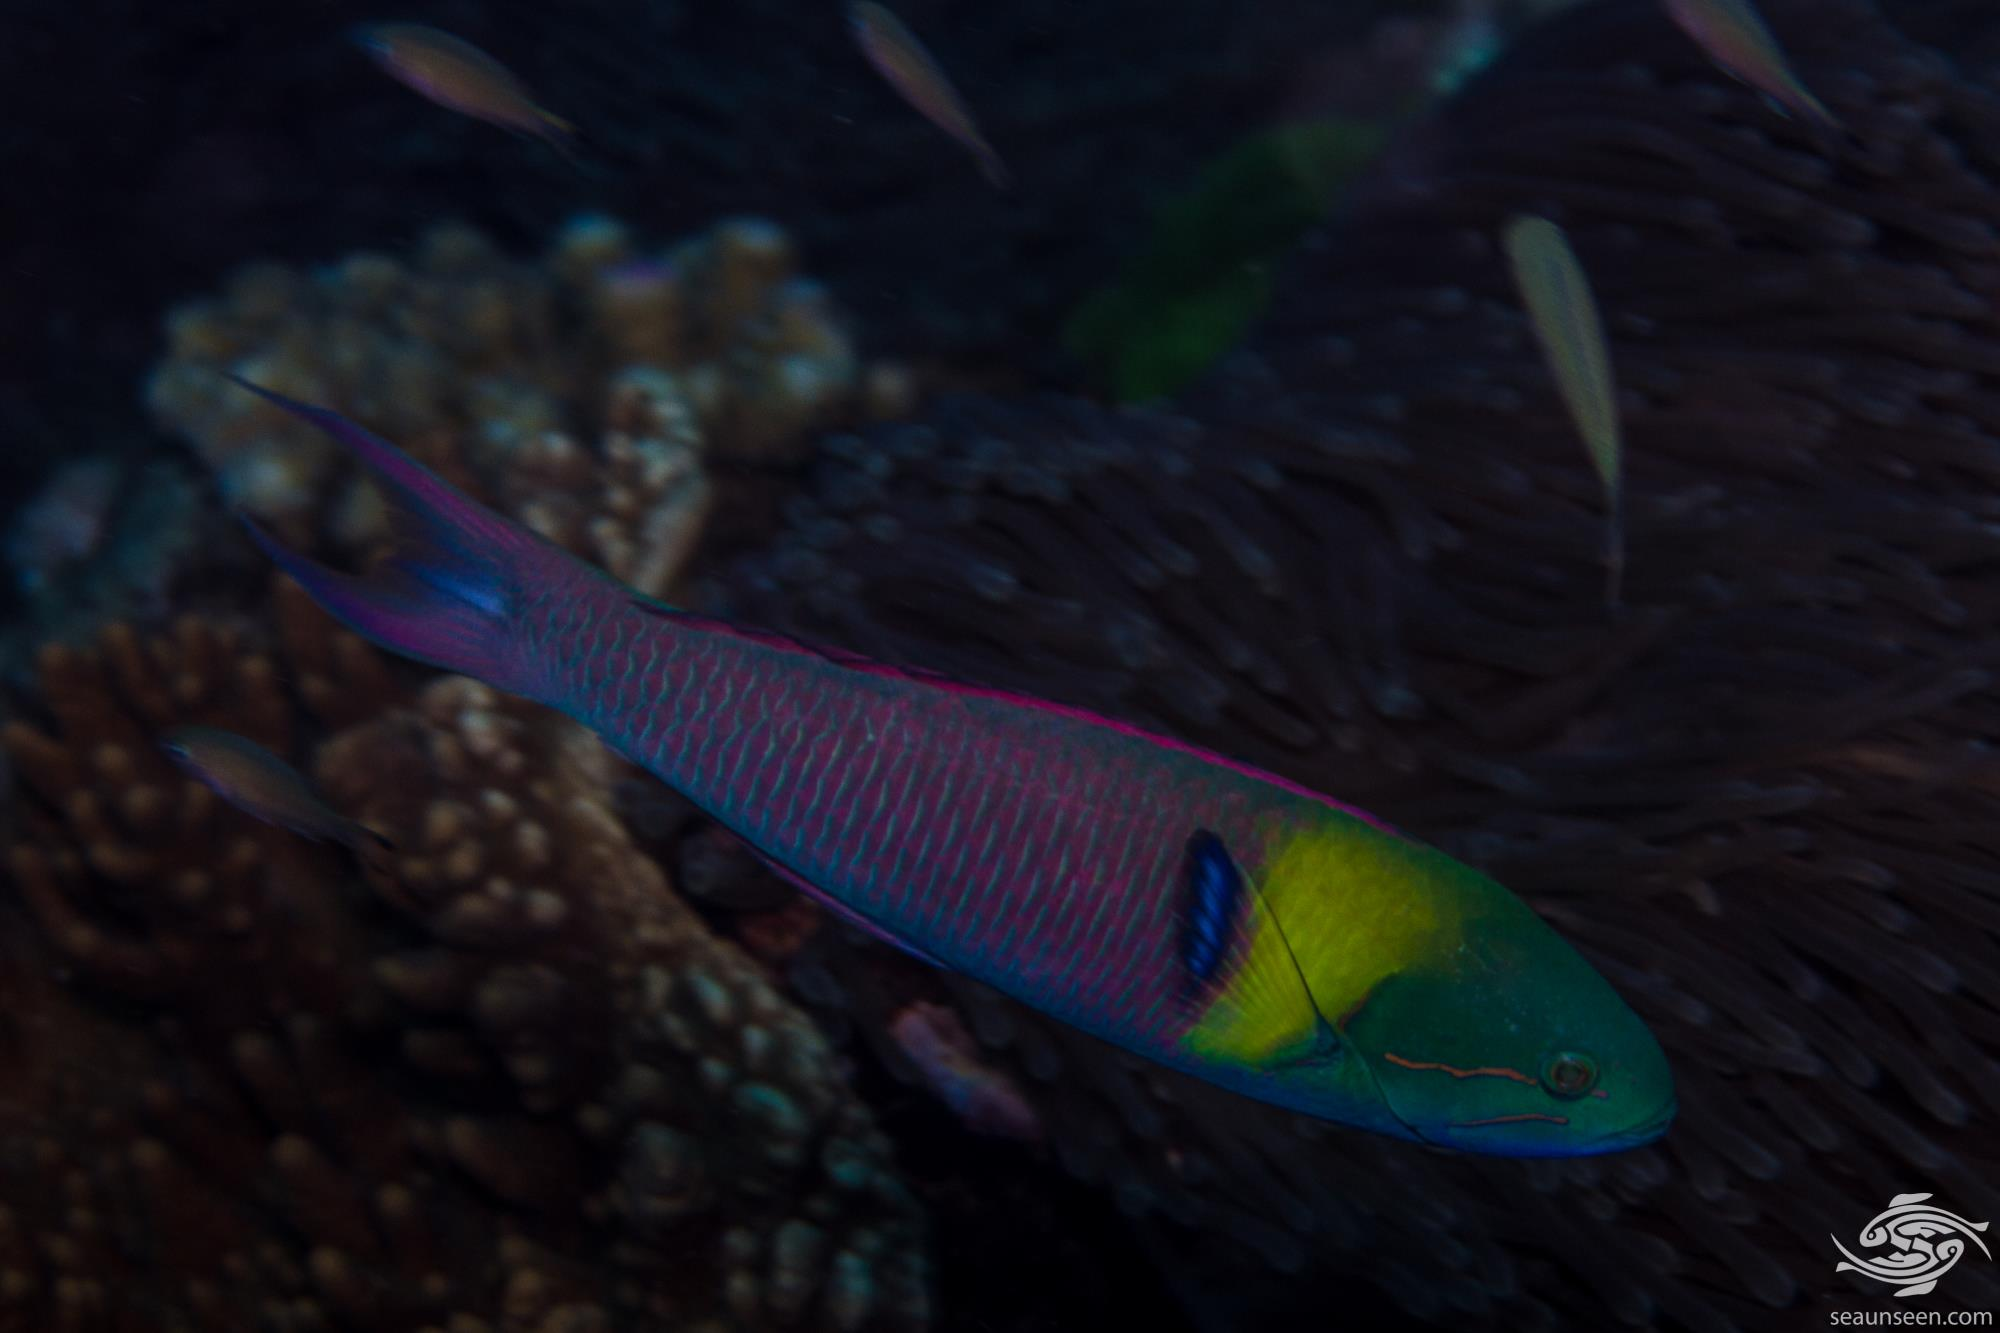 Bluntheaded Wrasse (Thalassoma amblycephalum) also known as the Blueheaded wrasse